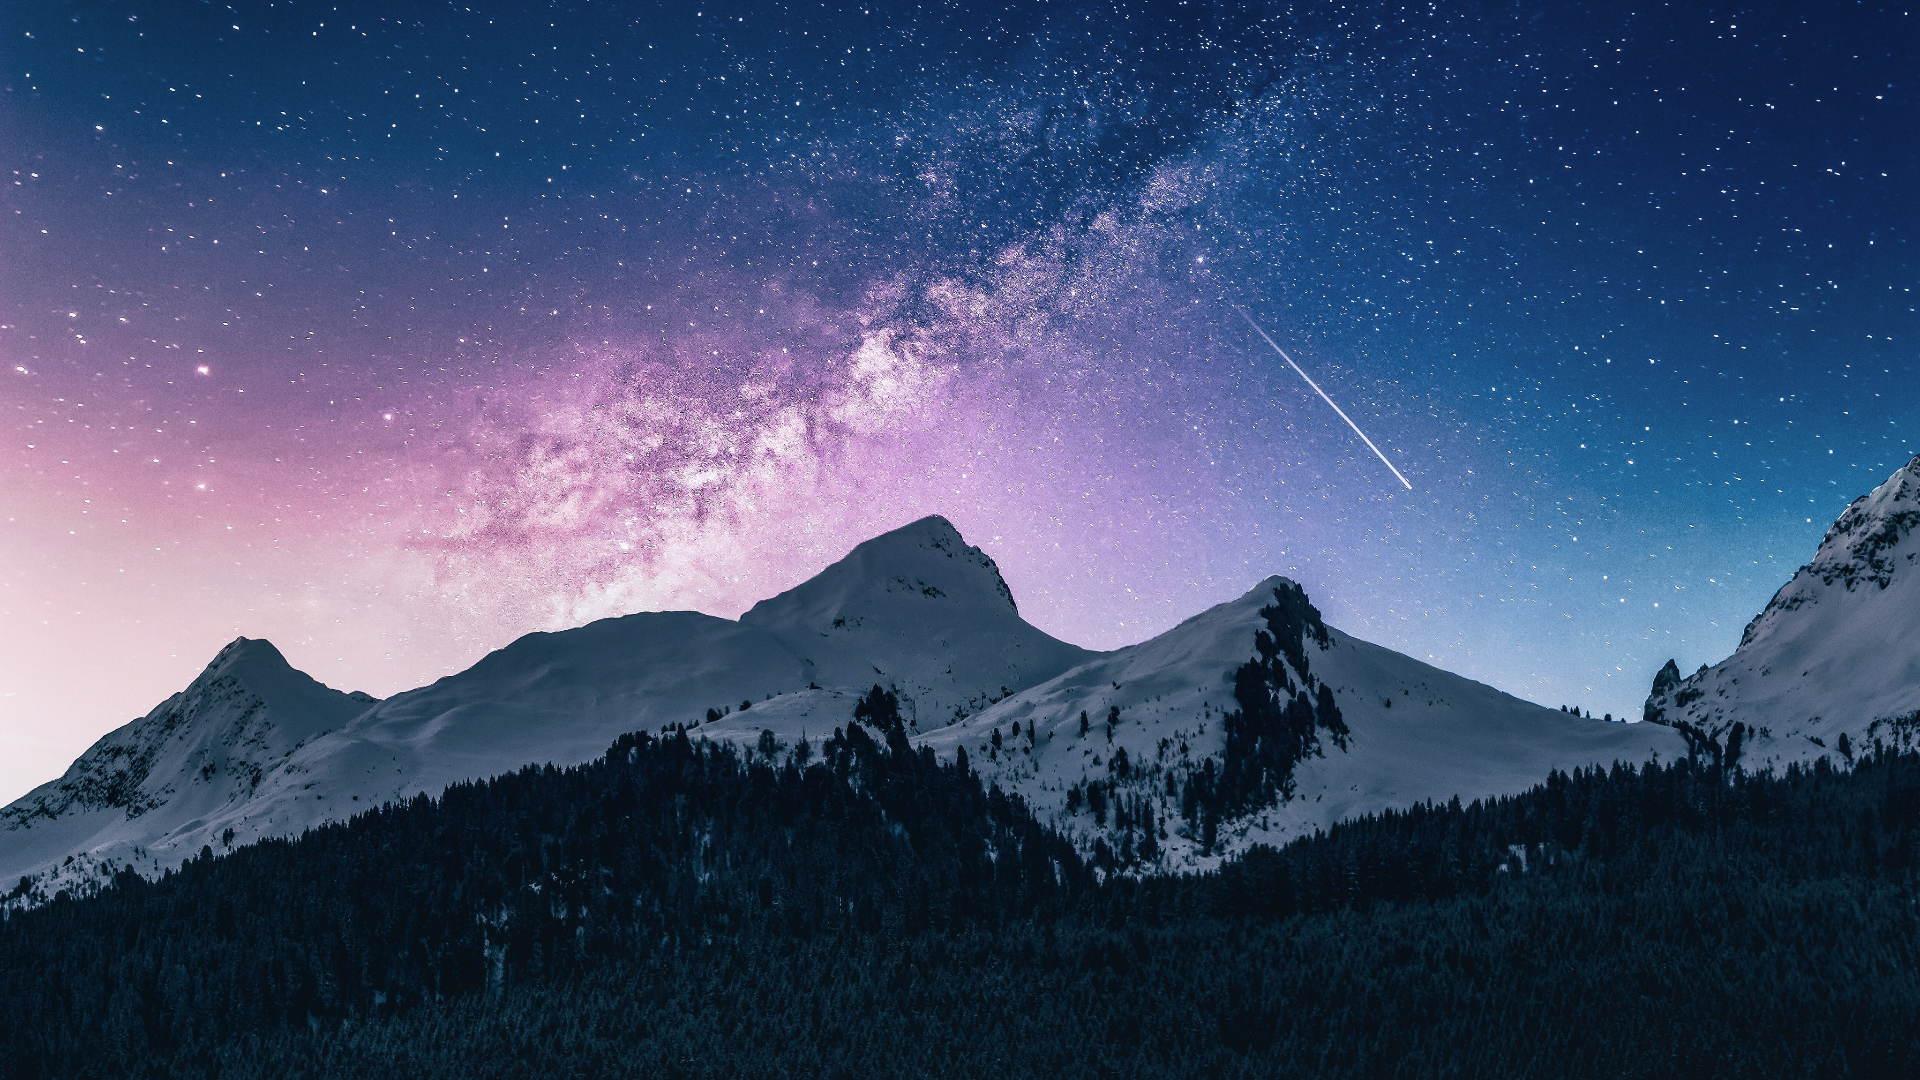 General 1920x1080 nature landscape mountains trees forest night snow sky stars shooting stars Italy